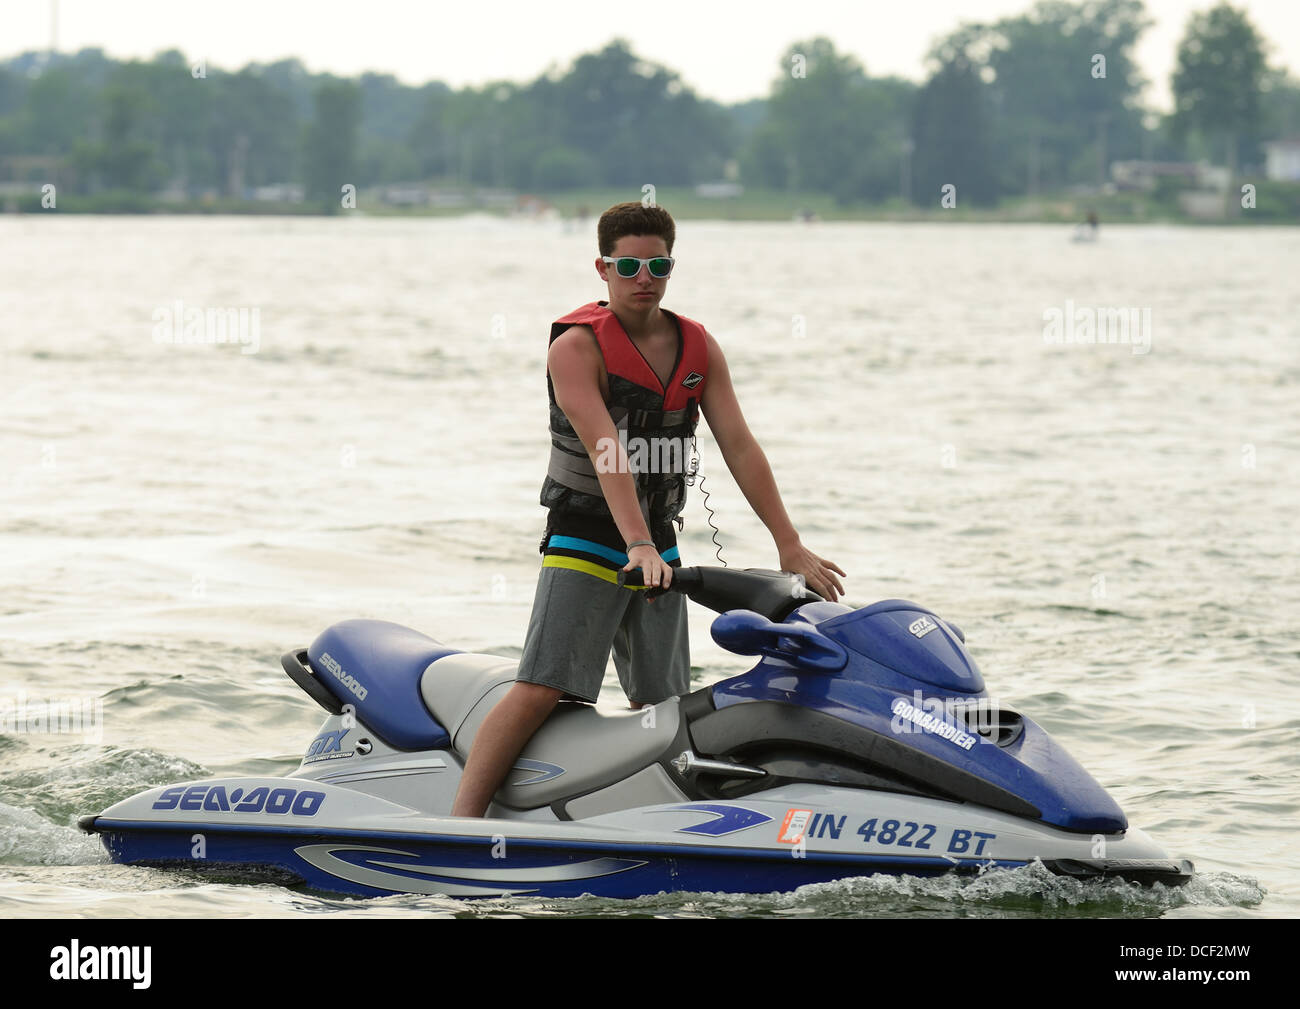 Teen boy on a personal watercraft. - Stock Image